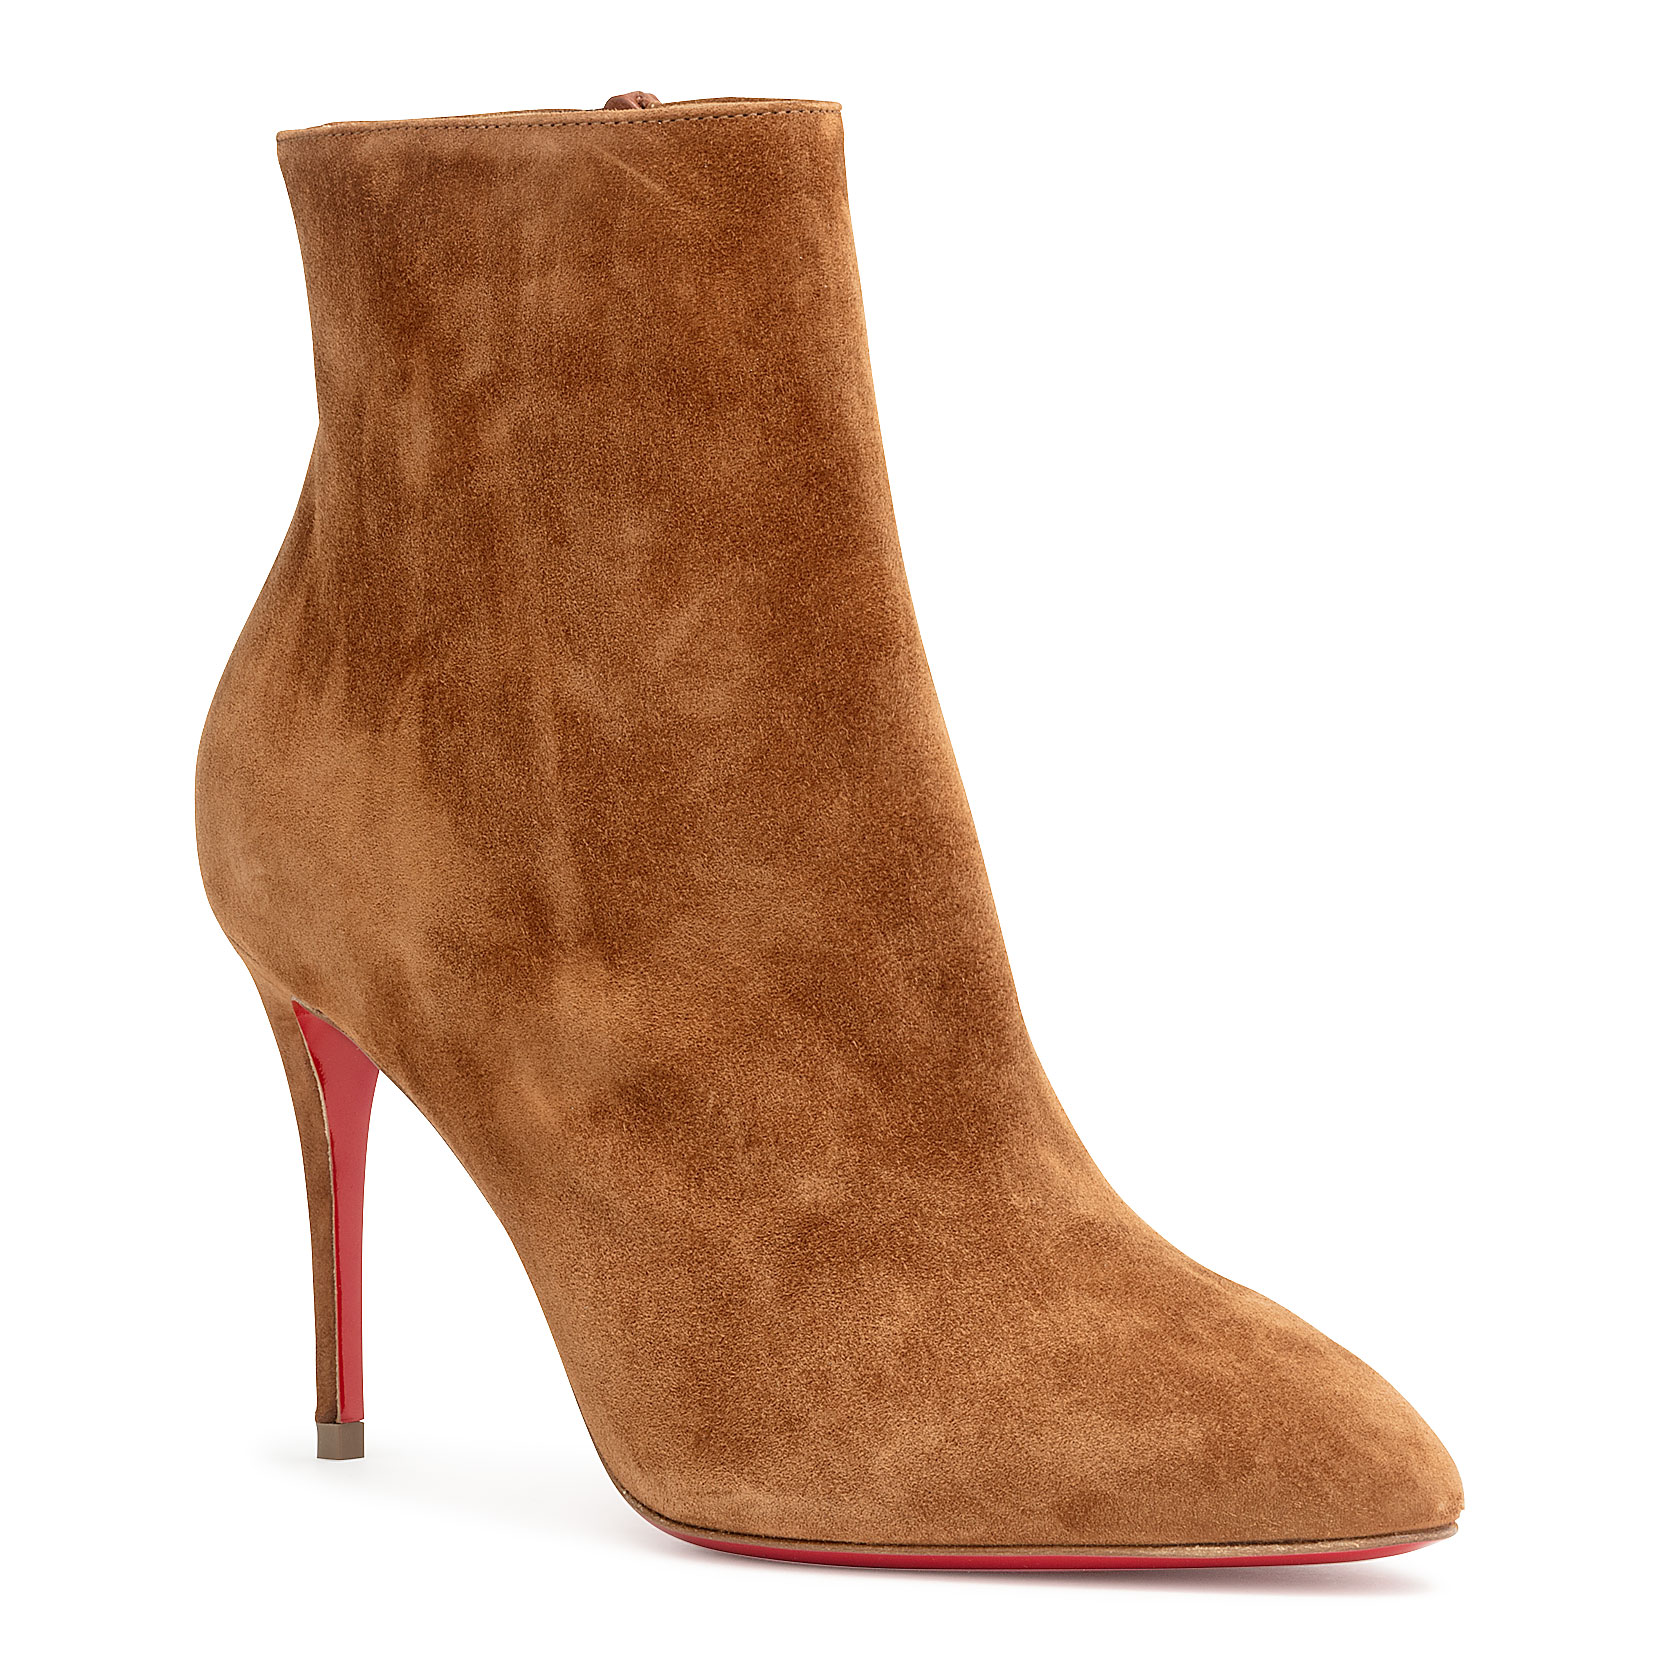 c68d430a2caf Christian Louboutin Eloise Booty 85 Tan Suede Ankle Boots In Brown ...